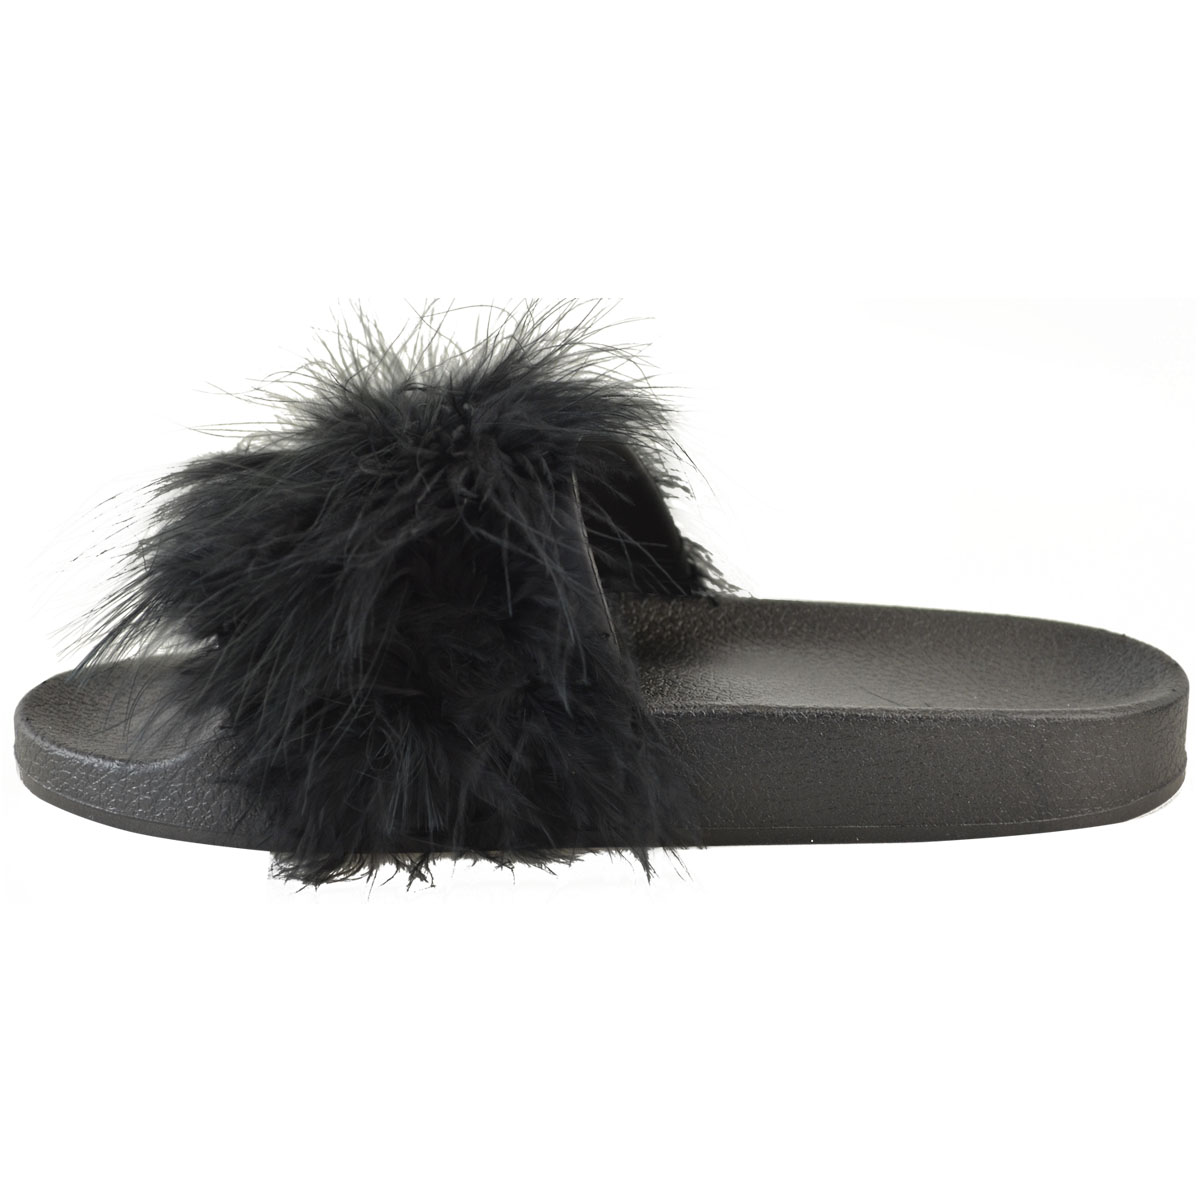 b542a97d45a4 Womens Fluffy Feather Faux Fur Sliders Slides Casual Slip Mules ...